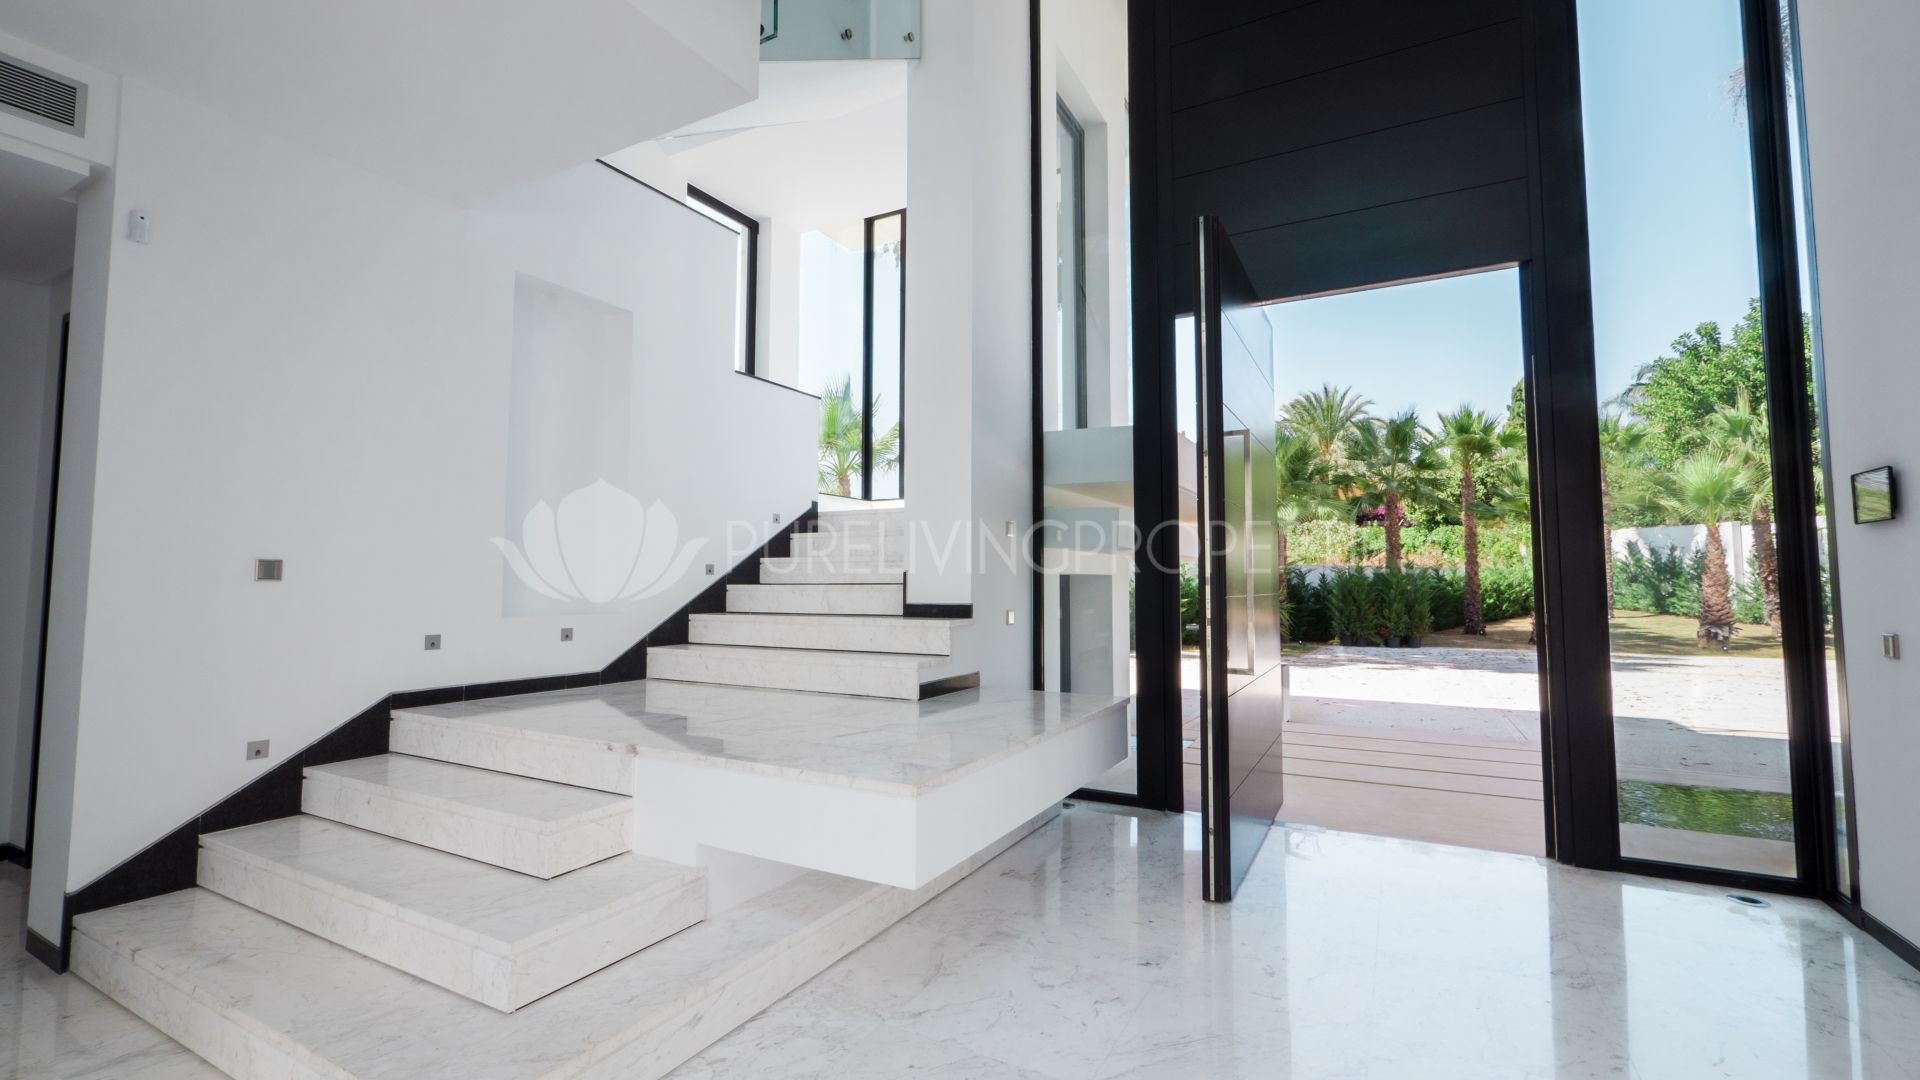 Luxurious Villa in Guadalmina Baja, Marbella